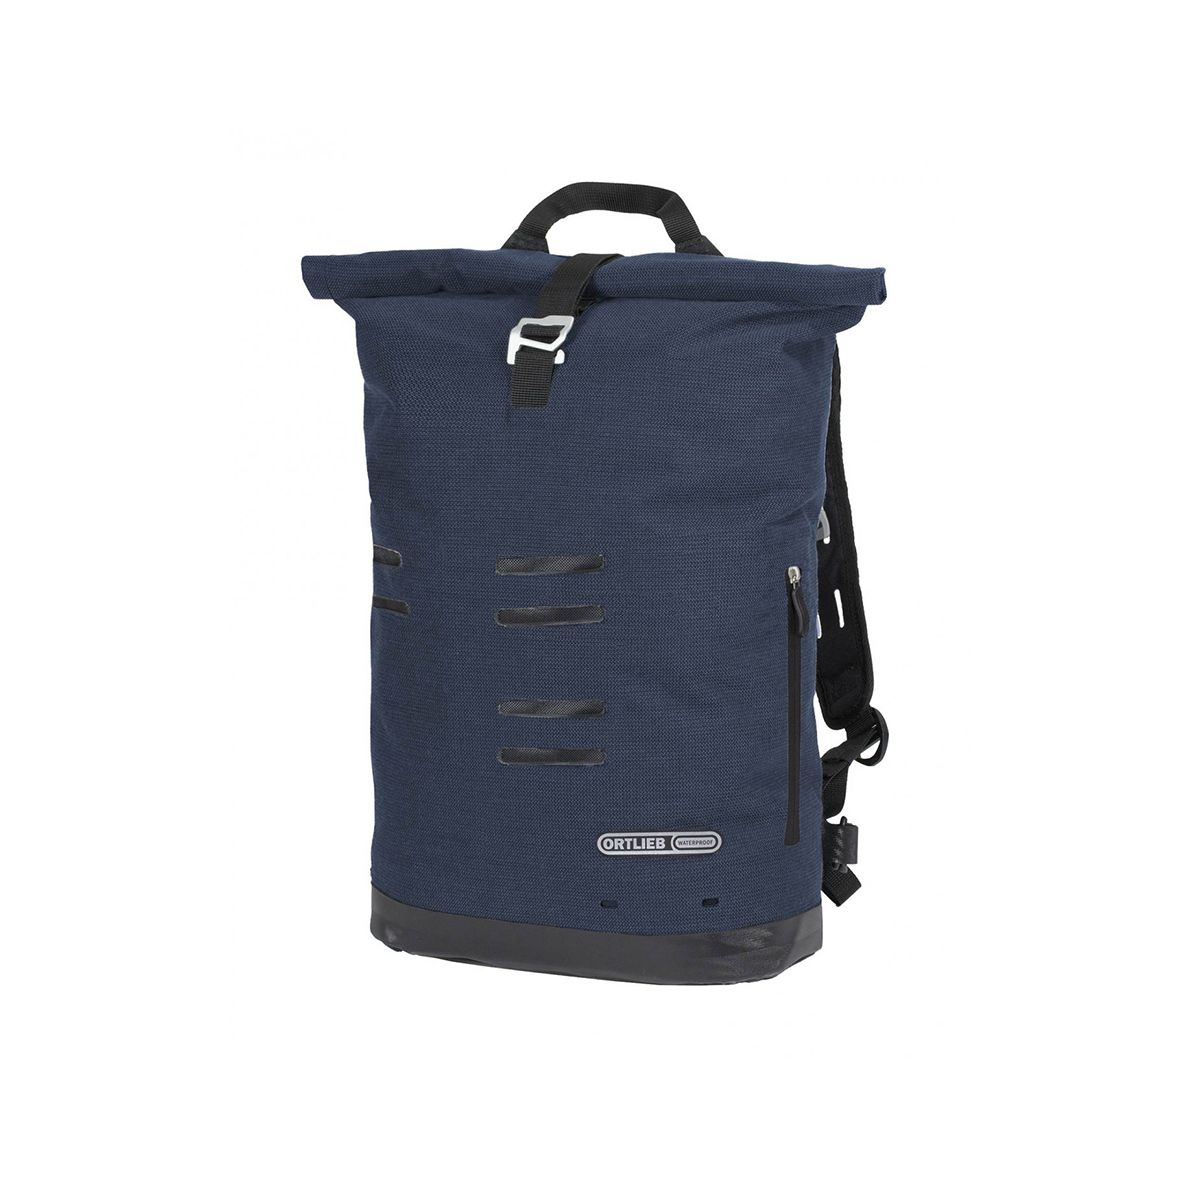 COMMUTER DAYPACK urban backpack